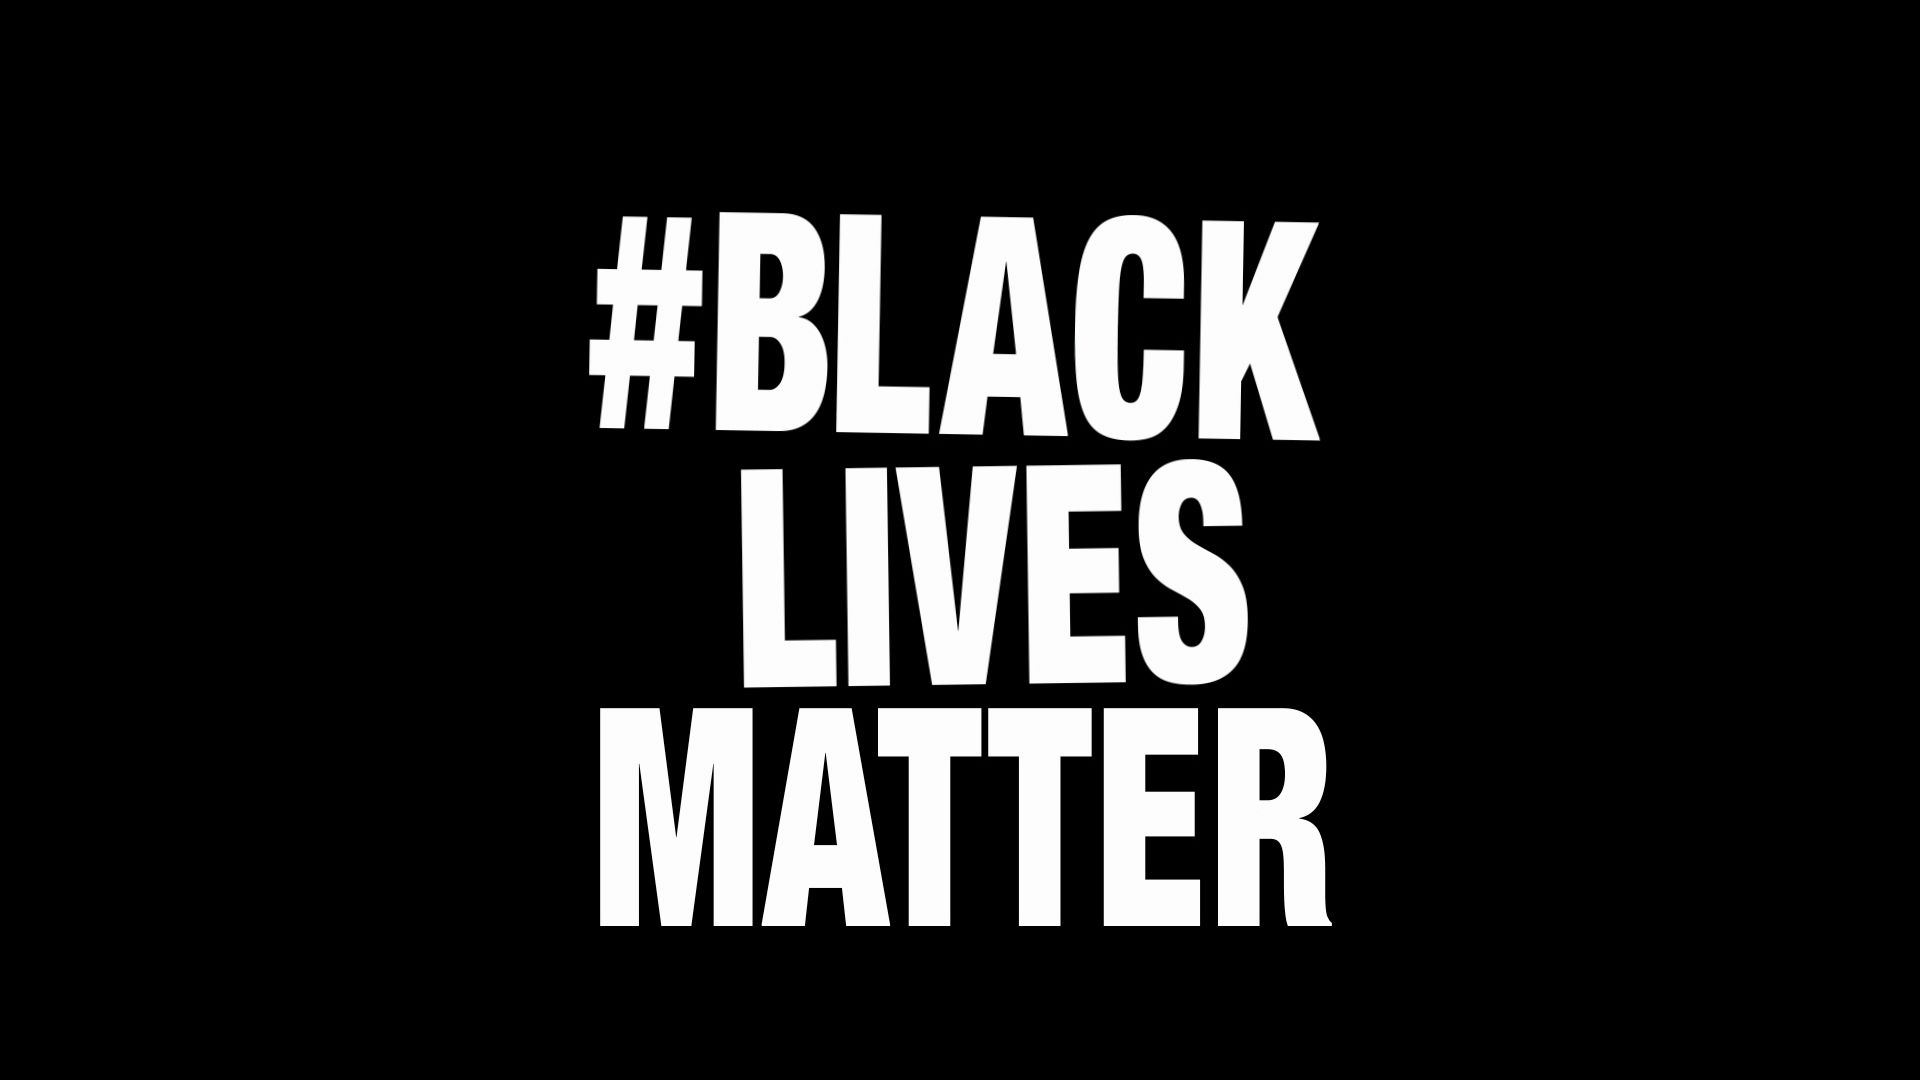 black lives matter logo wallpapers